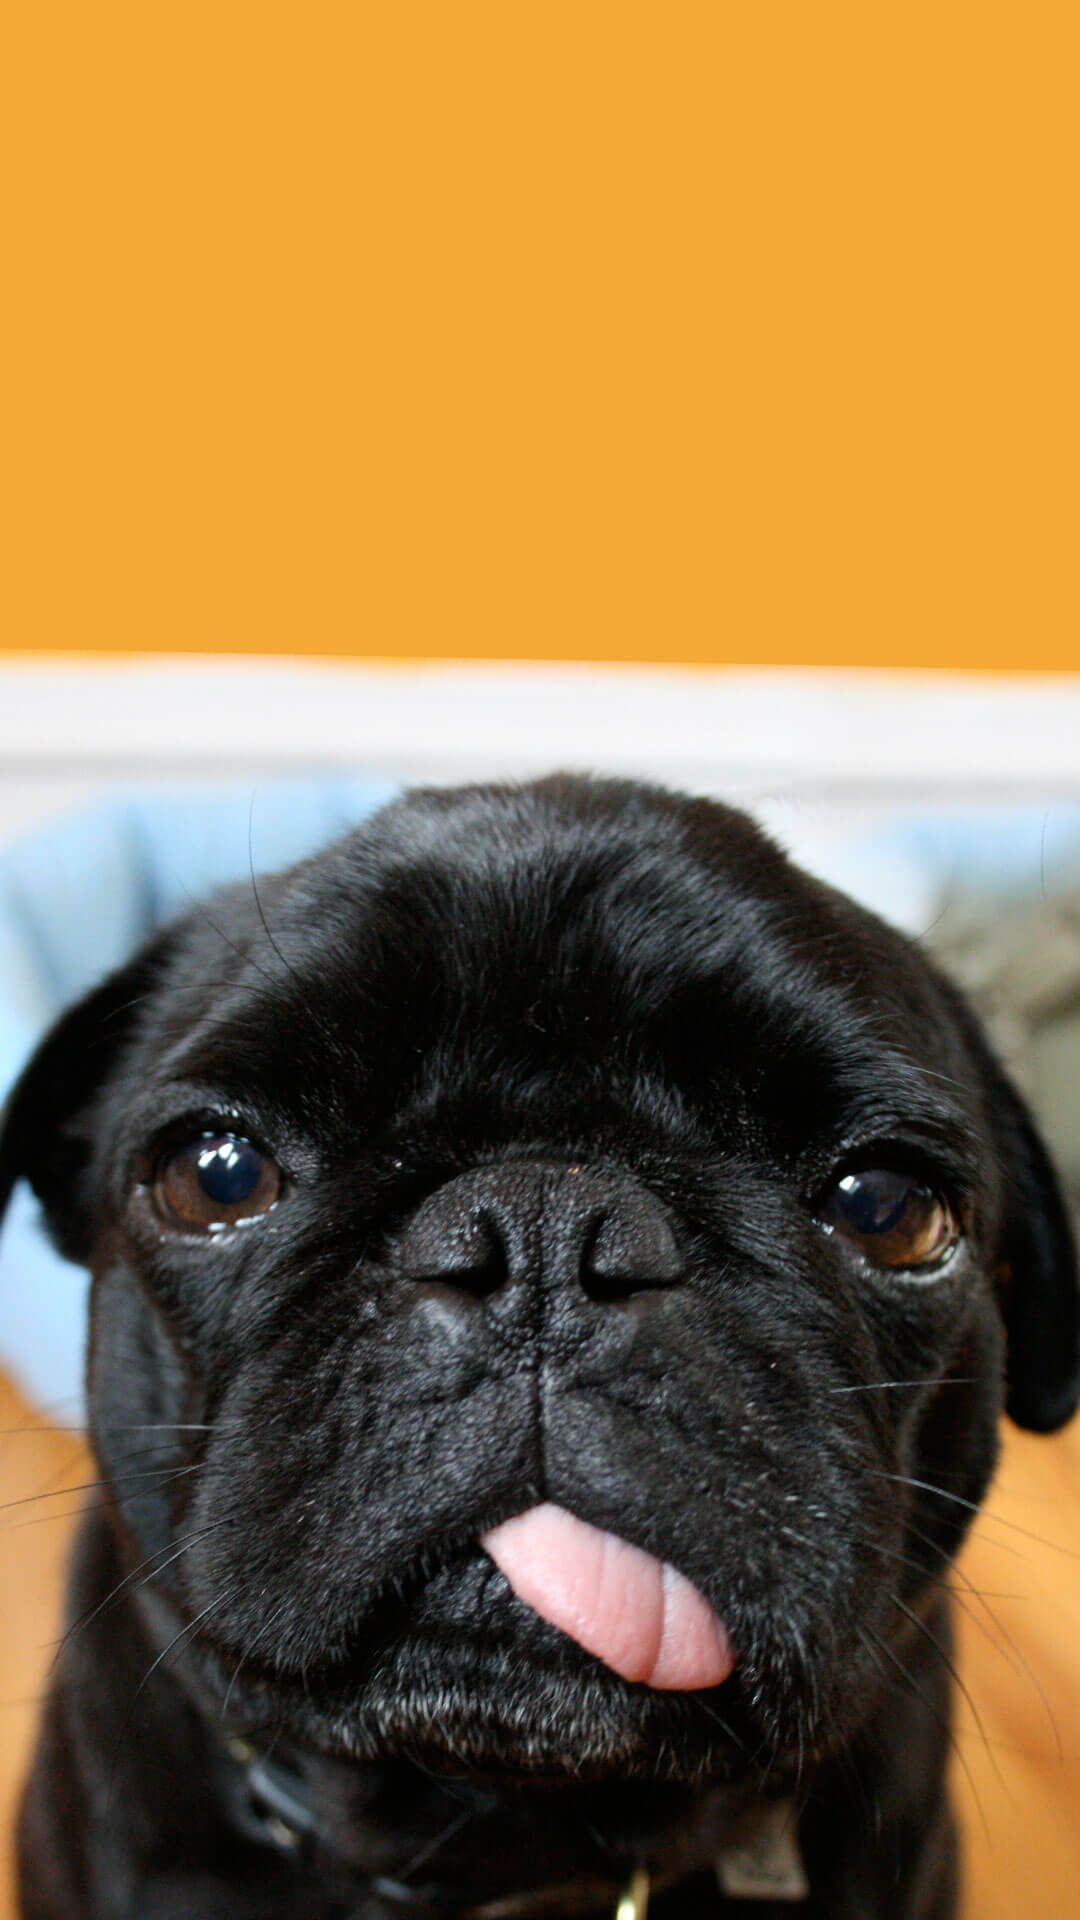 Cute Black Pug Wallpaper iPhone HD Animal Wallpaper for